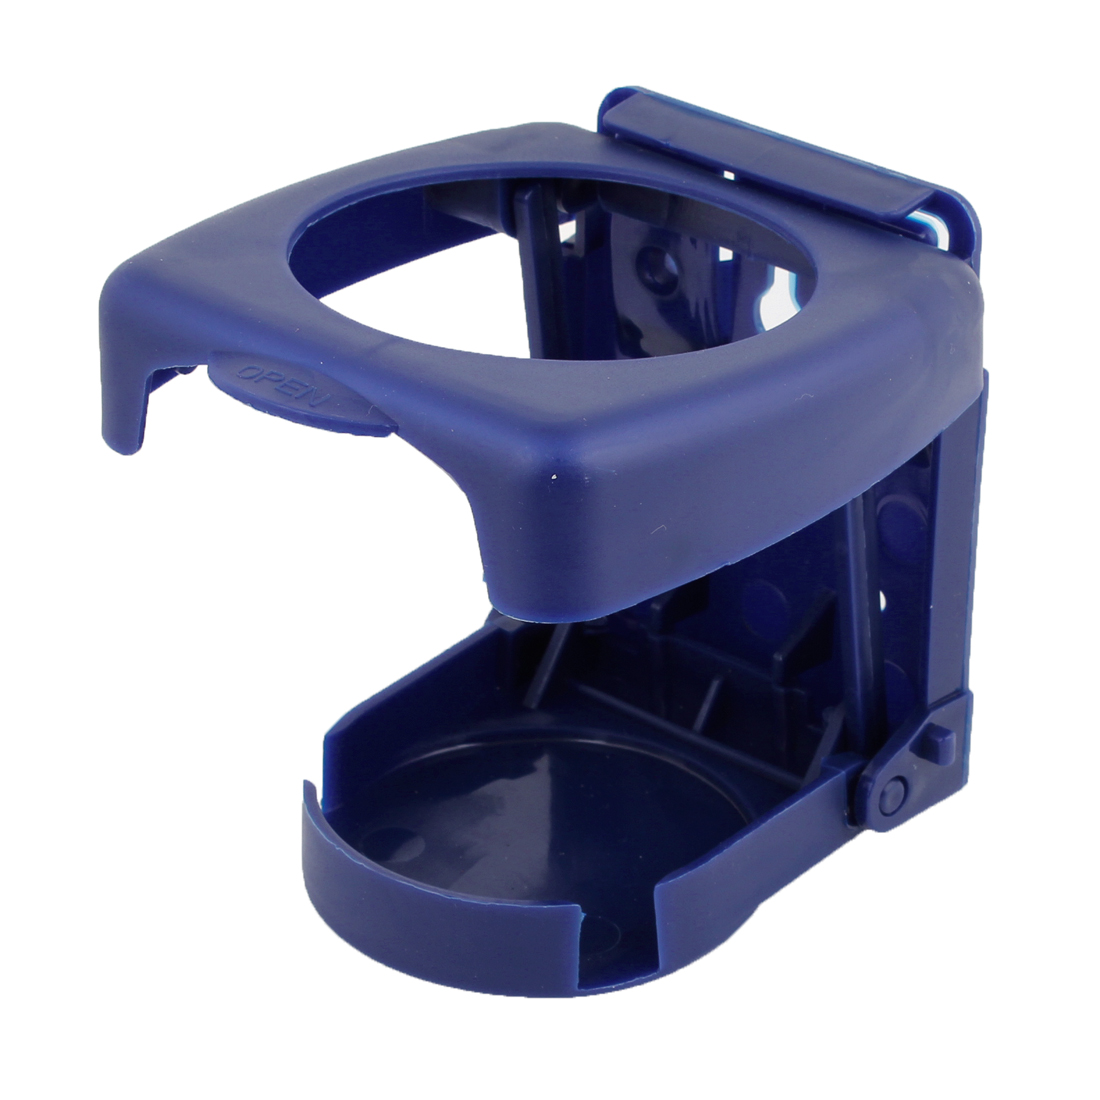 Truck Car Vehicle Folding Beverage Bottle Can Drink Cup Holder Stand Blue